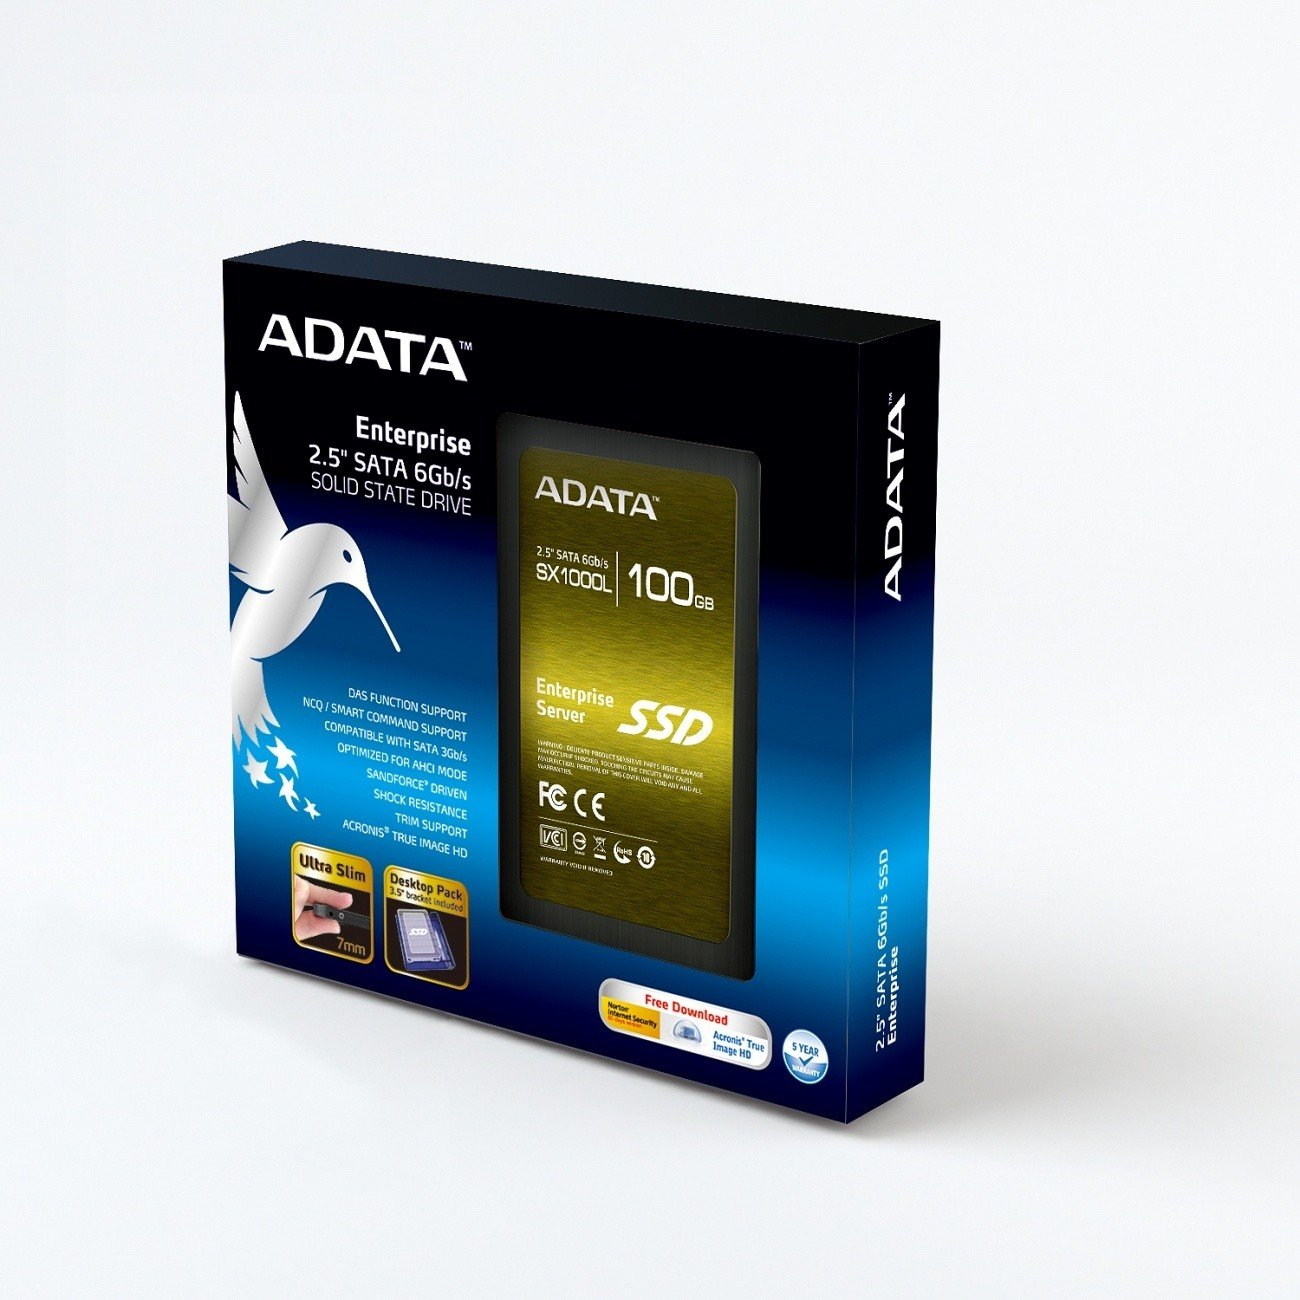 adata_releases_new_solid_state_drives_for_the_enterprise